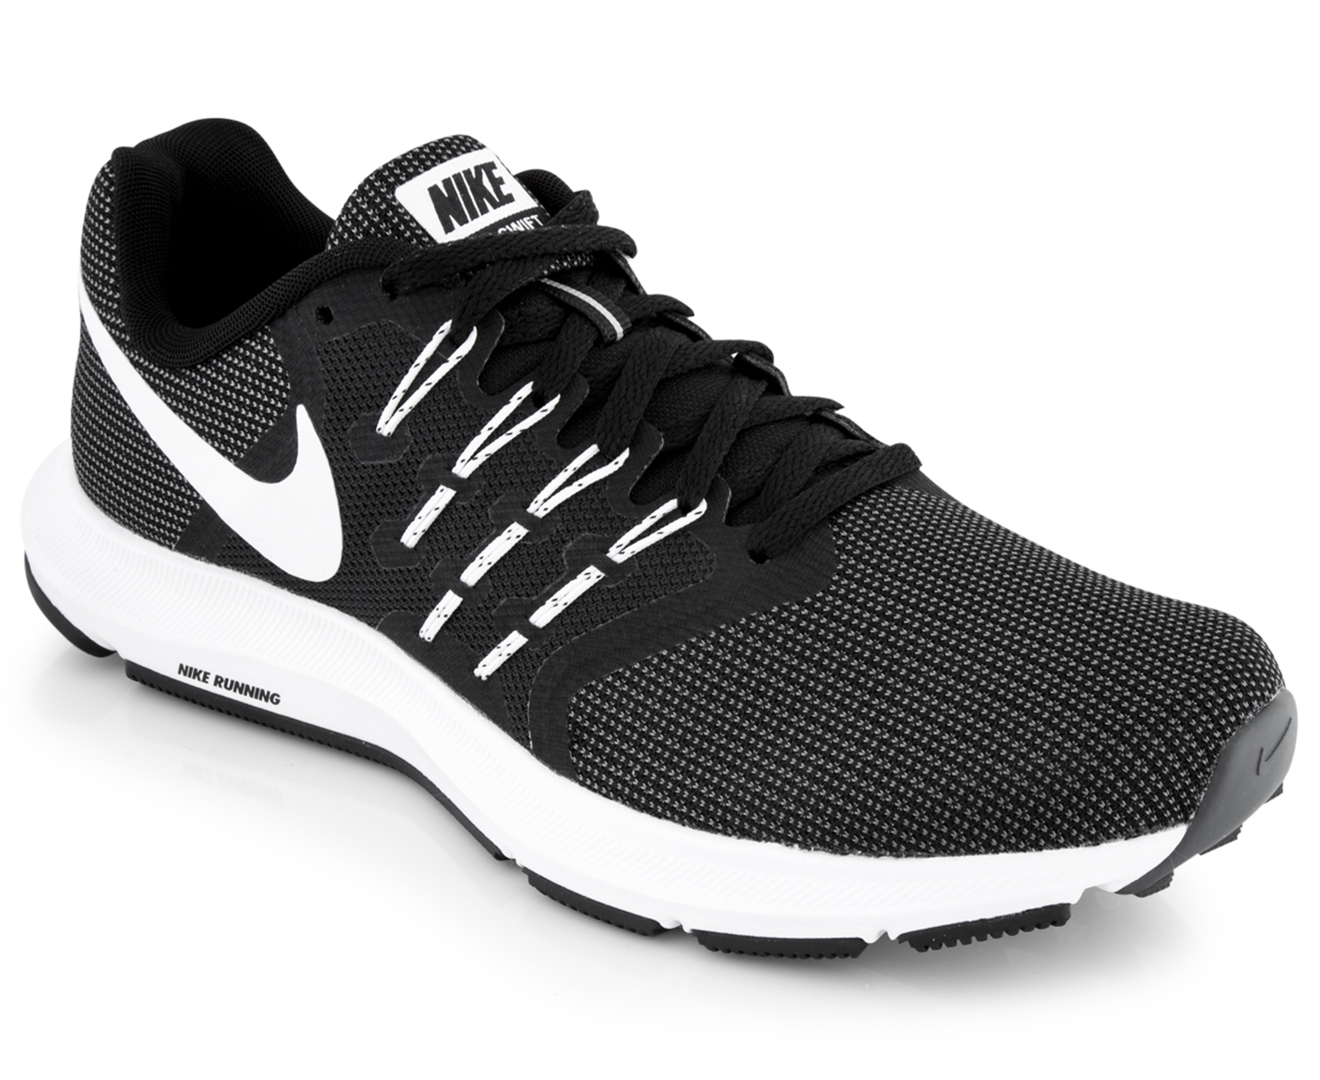 Nike Women's Run Swift Shoe - Black/White | Great daily deals at  Australia's favourite superstore | Mumgo.com.au